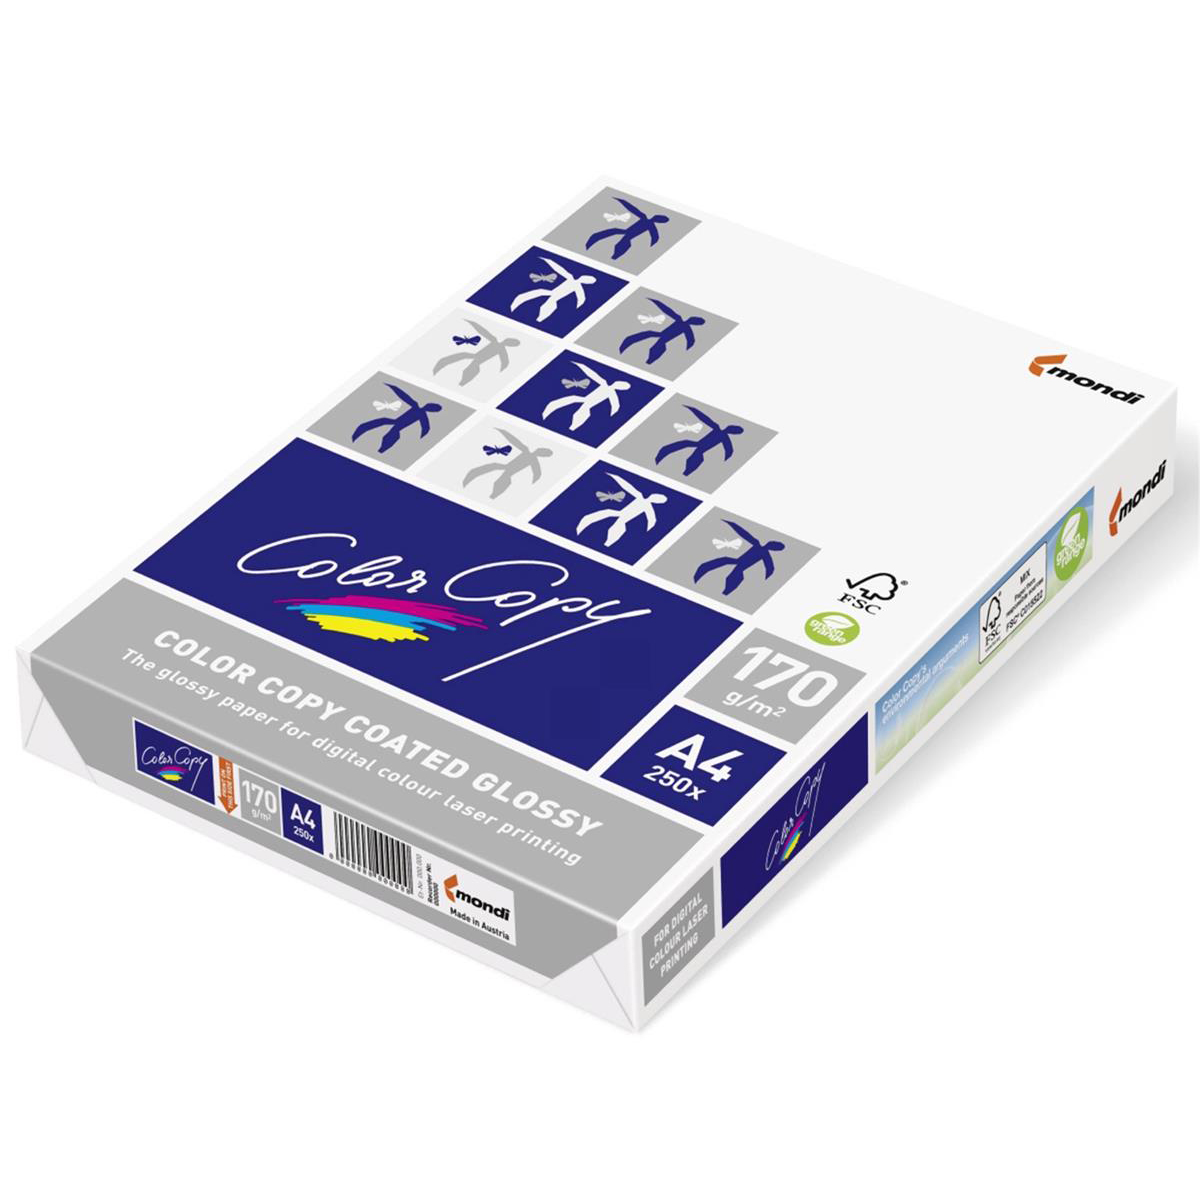 Color Copy Card Premium Coated Glossy A4 170gsm FSC White Ref CCG0170 250 Sheets